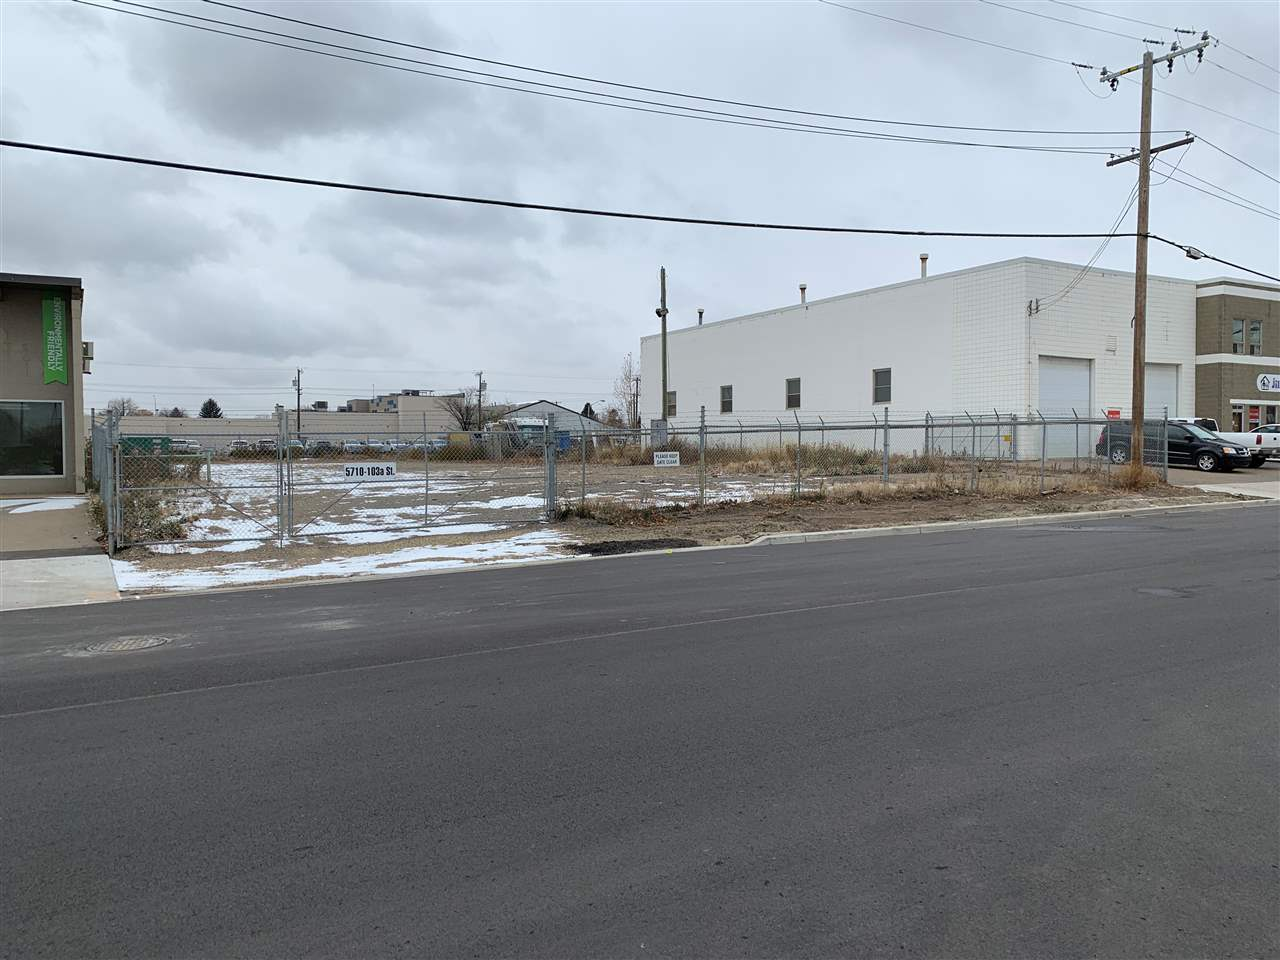 Rare 0.47 acres± of land for lease in easily accessible south central location ? Fenced and graveled site ? Easy access to Calgary Trail, Gateway Boulevard and Whitemud Drive ? Single bays near by also available for lease Available immediately. $2000 Per month Net plus $1,300 per month Operating costs.